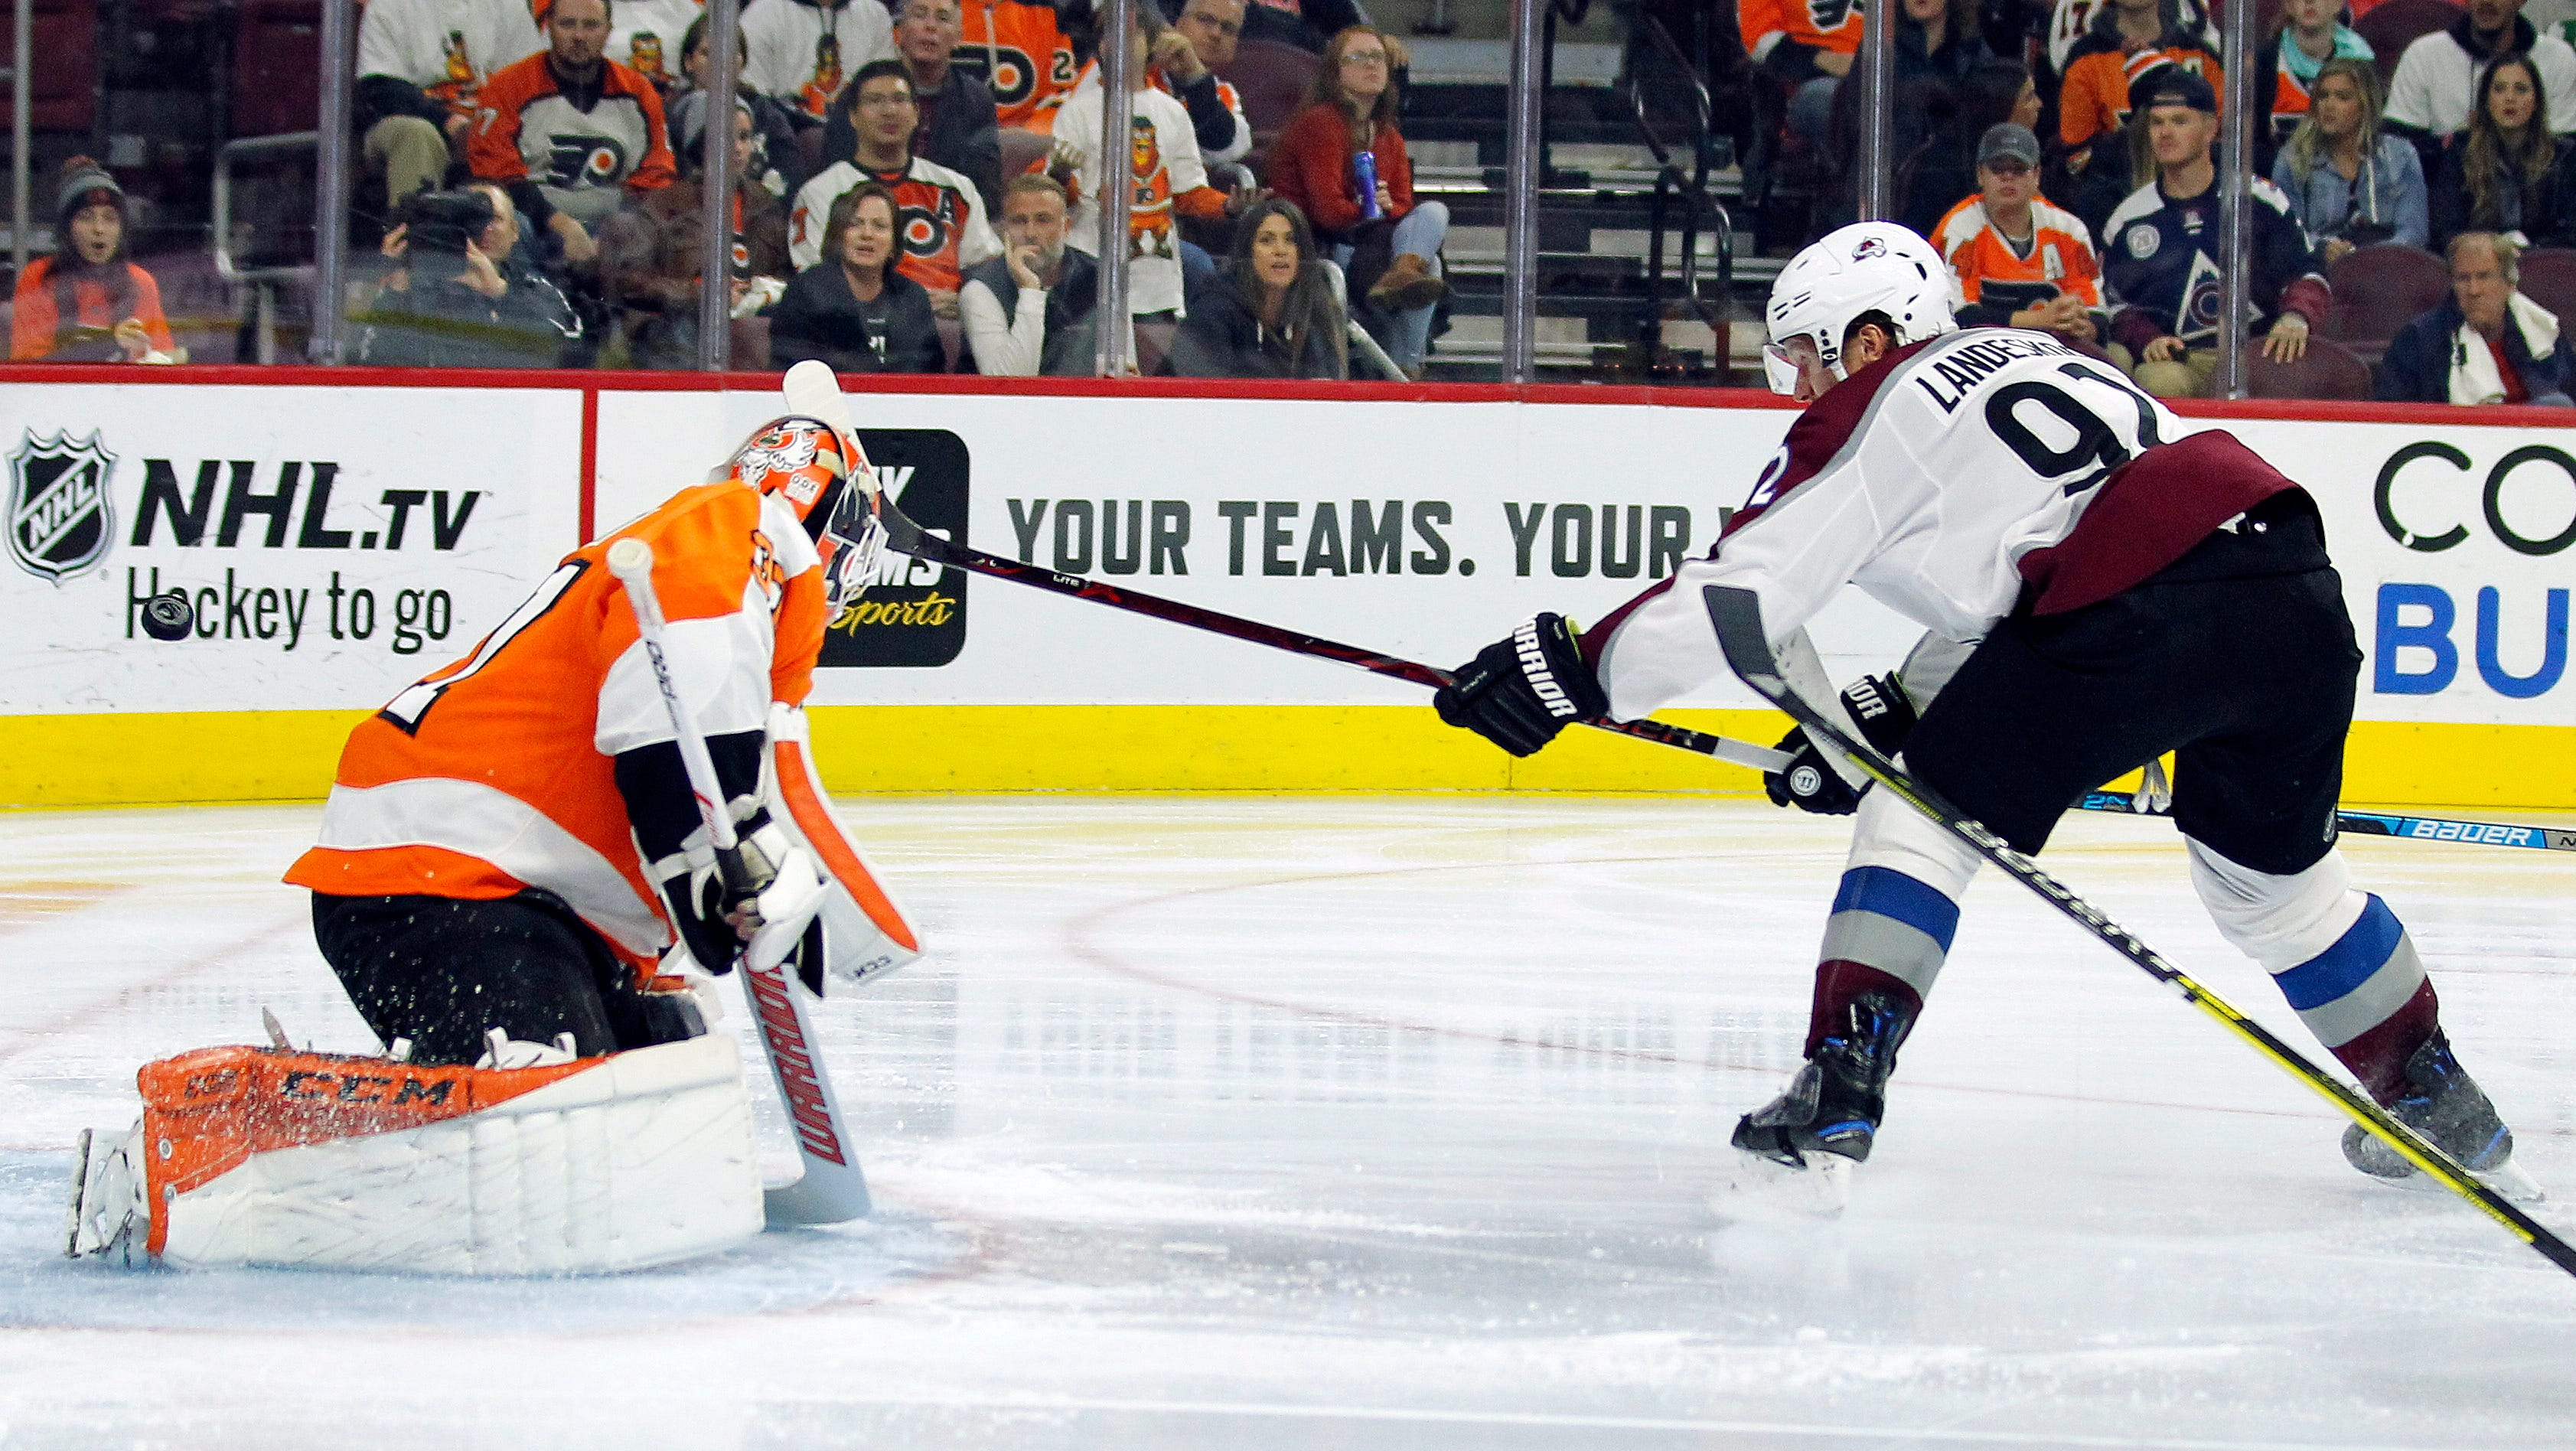 Rantanen scored twice, leads Avalanche past Flyers 4-1